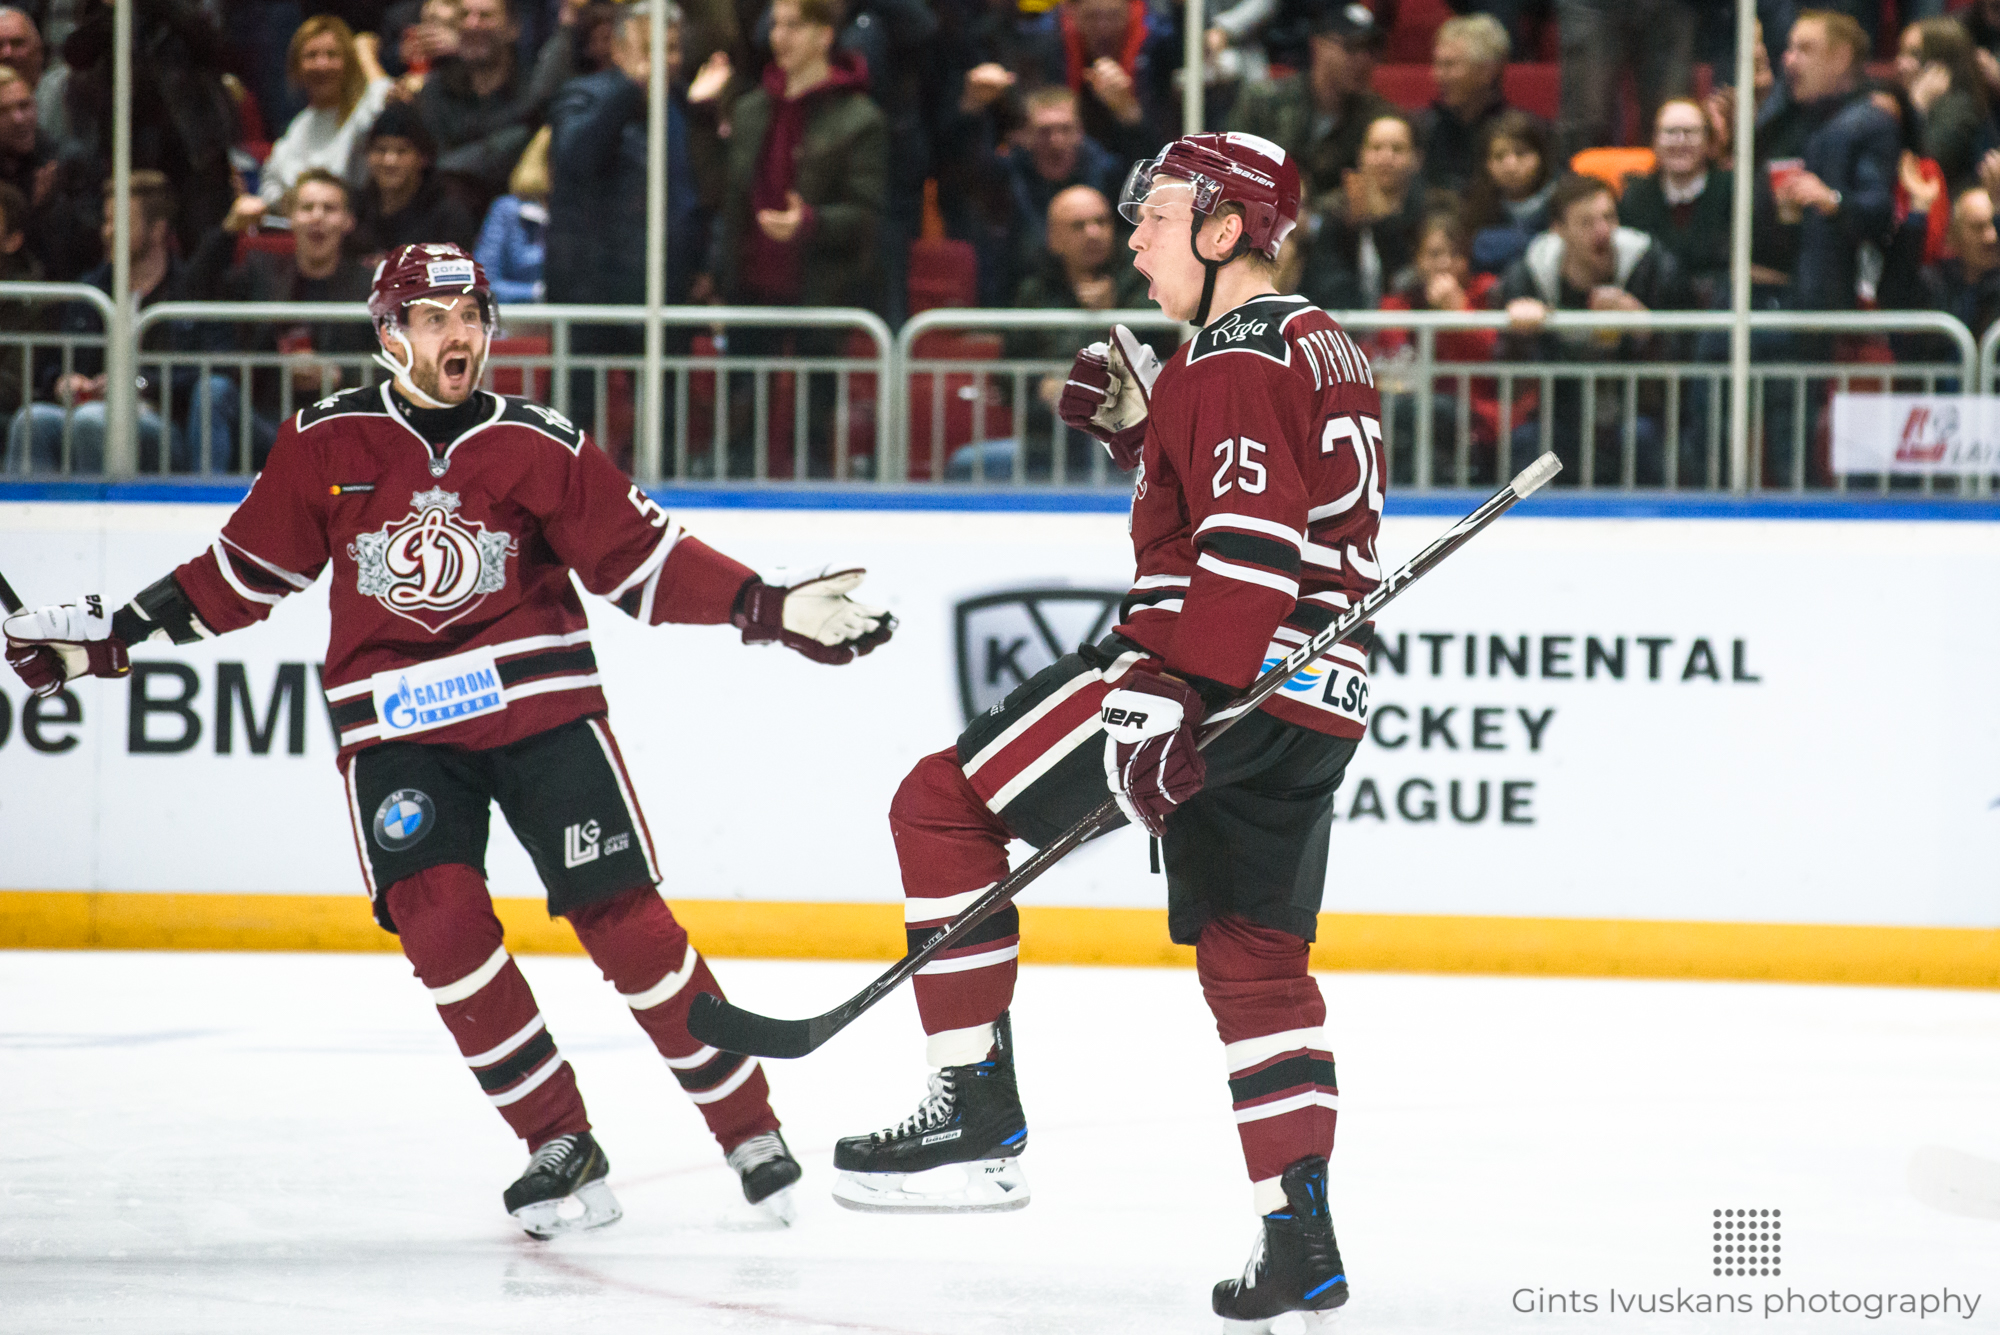 26.10.2018. RIGA, LATVIA.  Kontinental Hockey League (KHL) 2018/2019 season game Dinamo Riga vs. SKA Saint Petersburg.